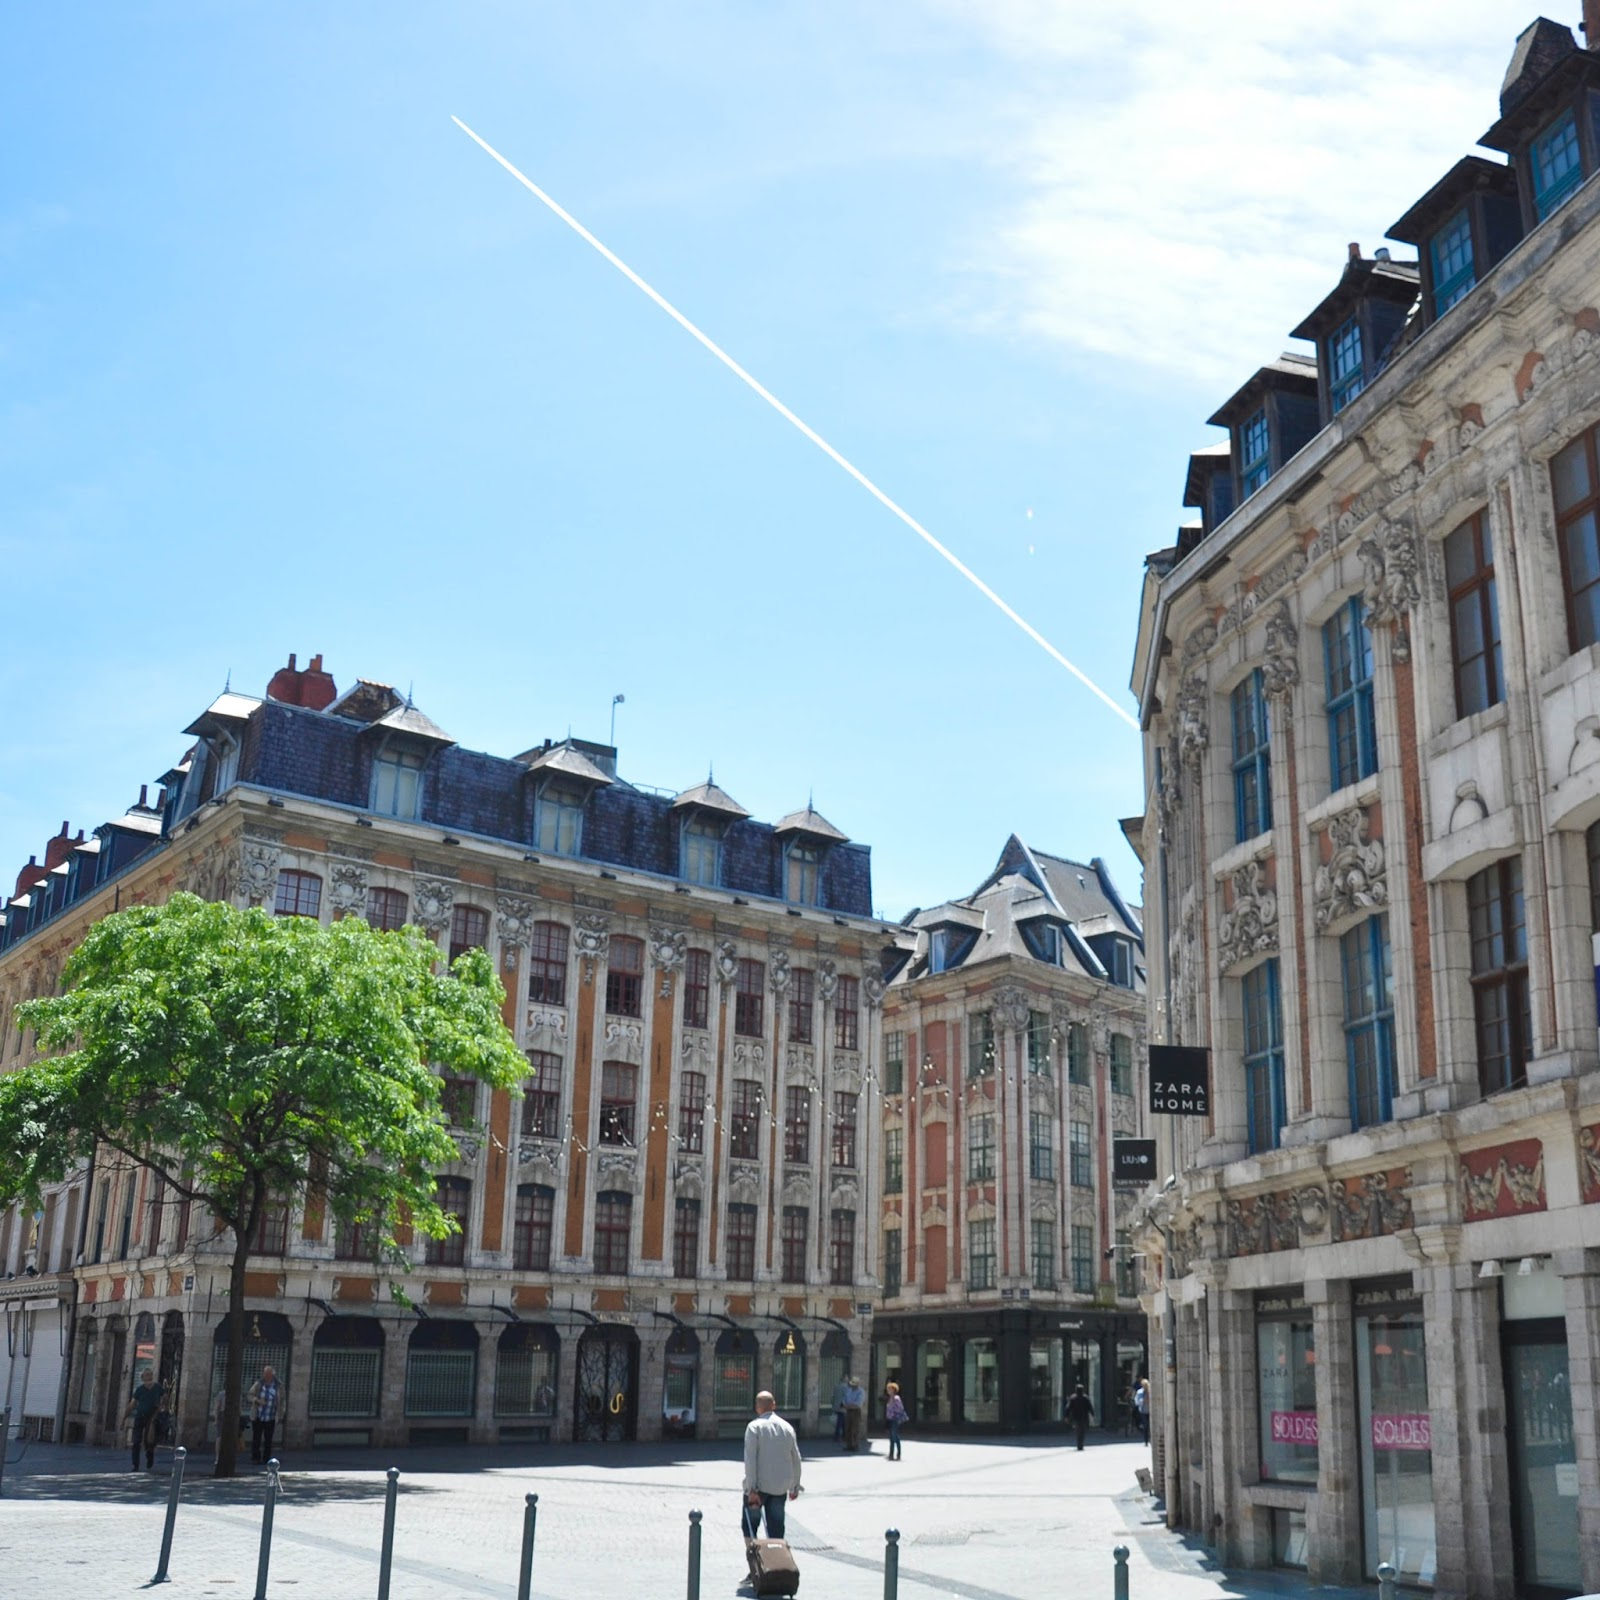 Square with a plane, Lille, France